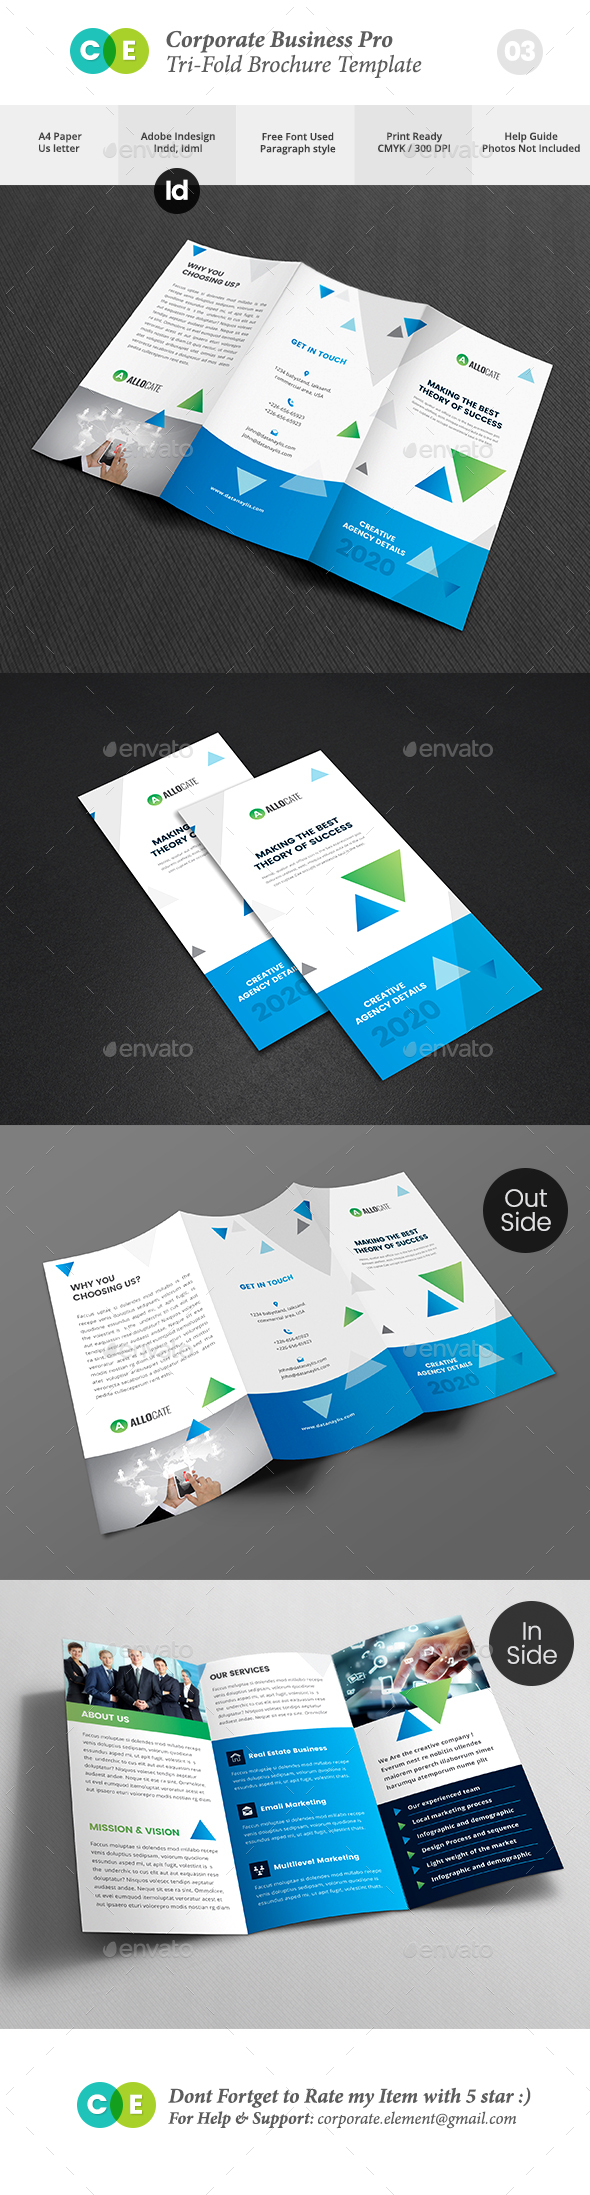 Corporate Business Pro Tri-Fold Brochure V03 - Brochures Print Templates